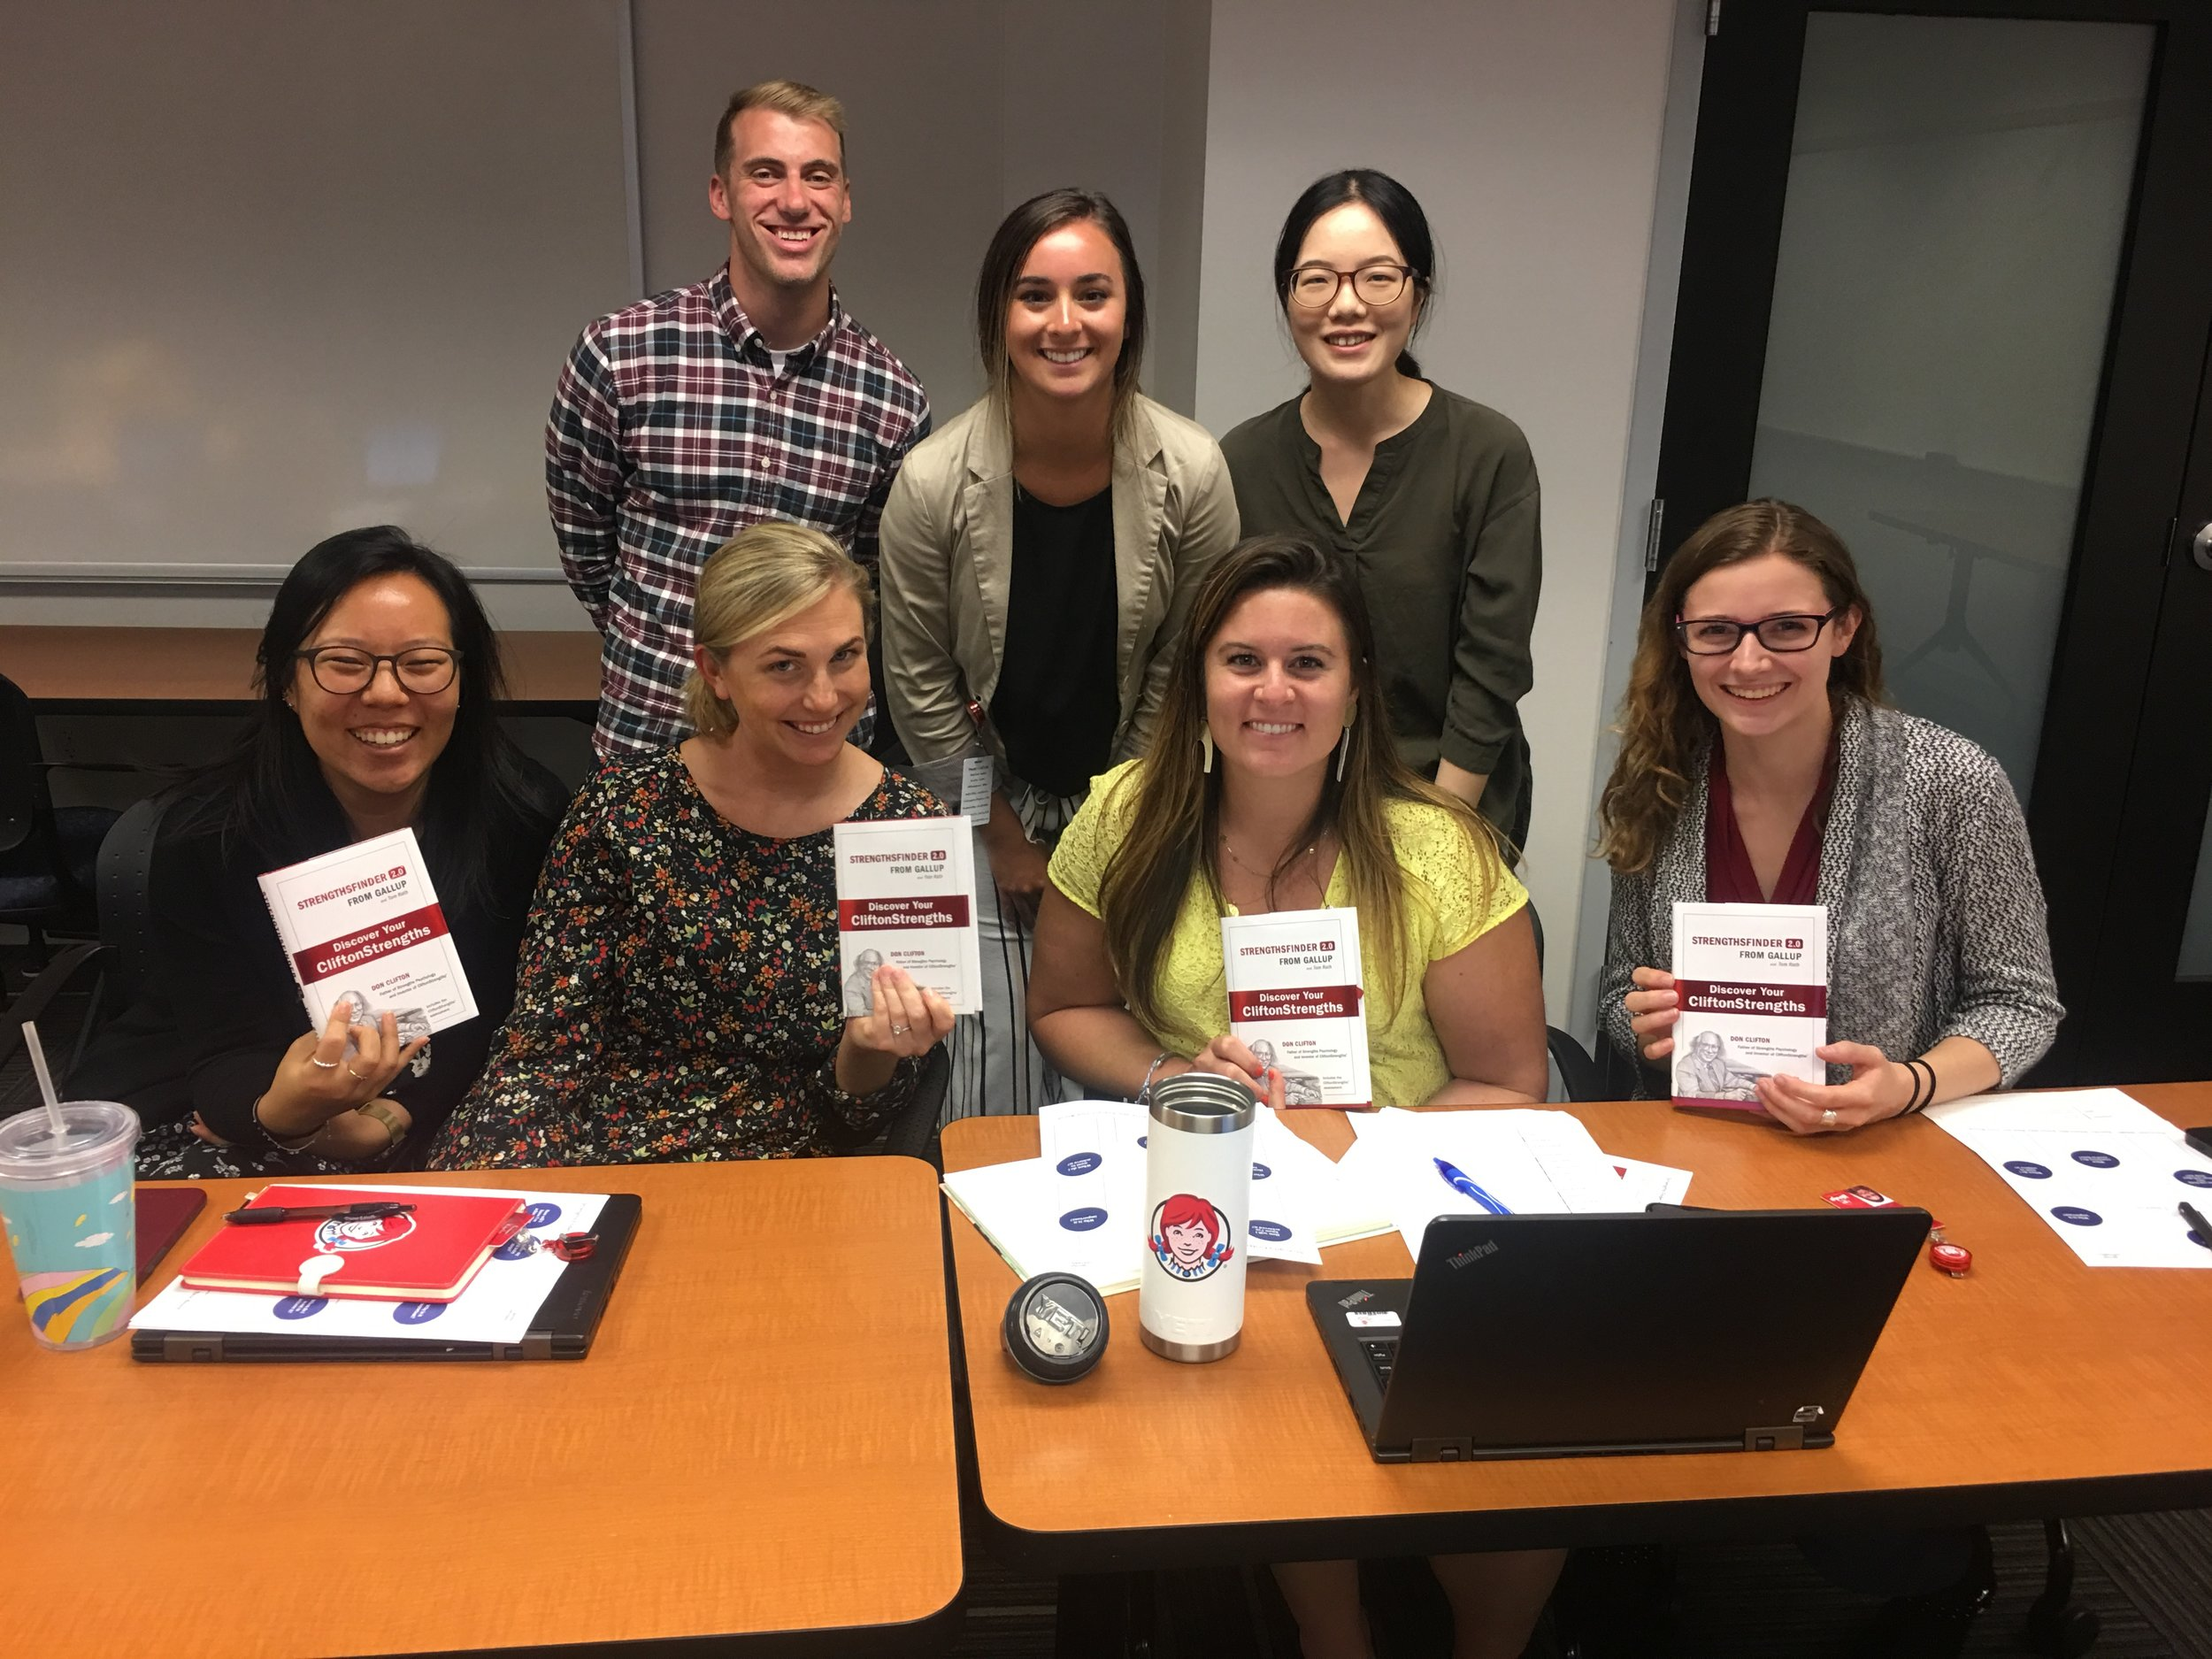 In addition to helping their teams succeed, The Wendy's Intern Class of 2019 participated in various professional development exercises to help grow their careers.